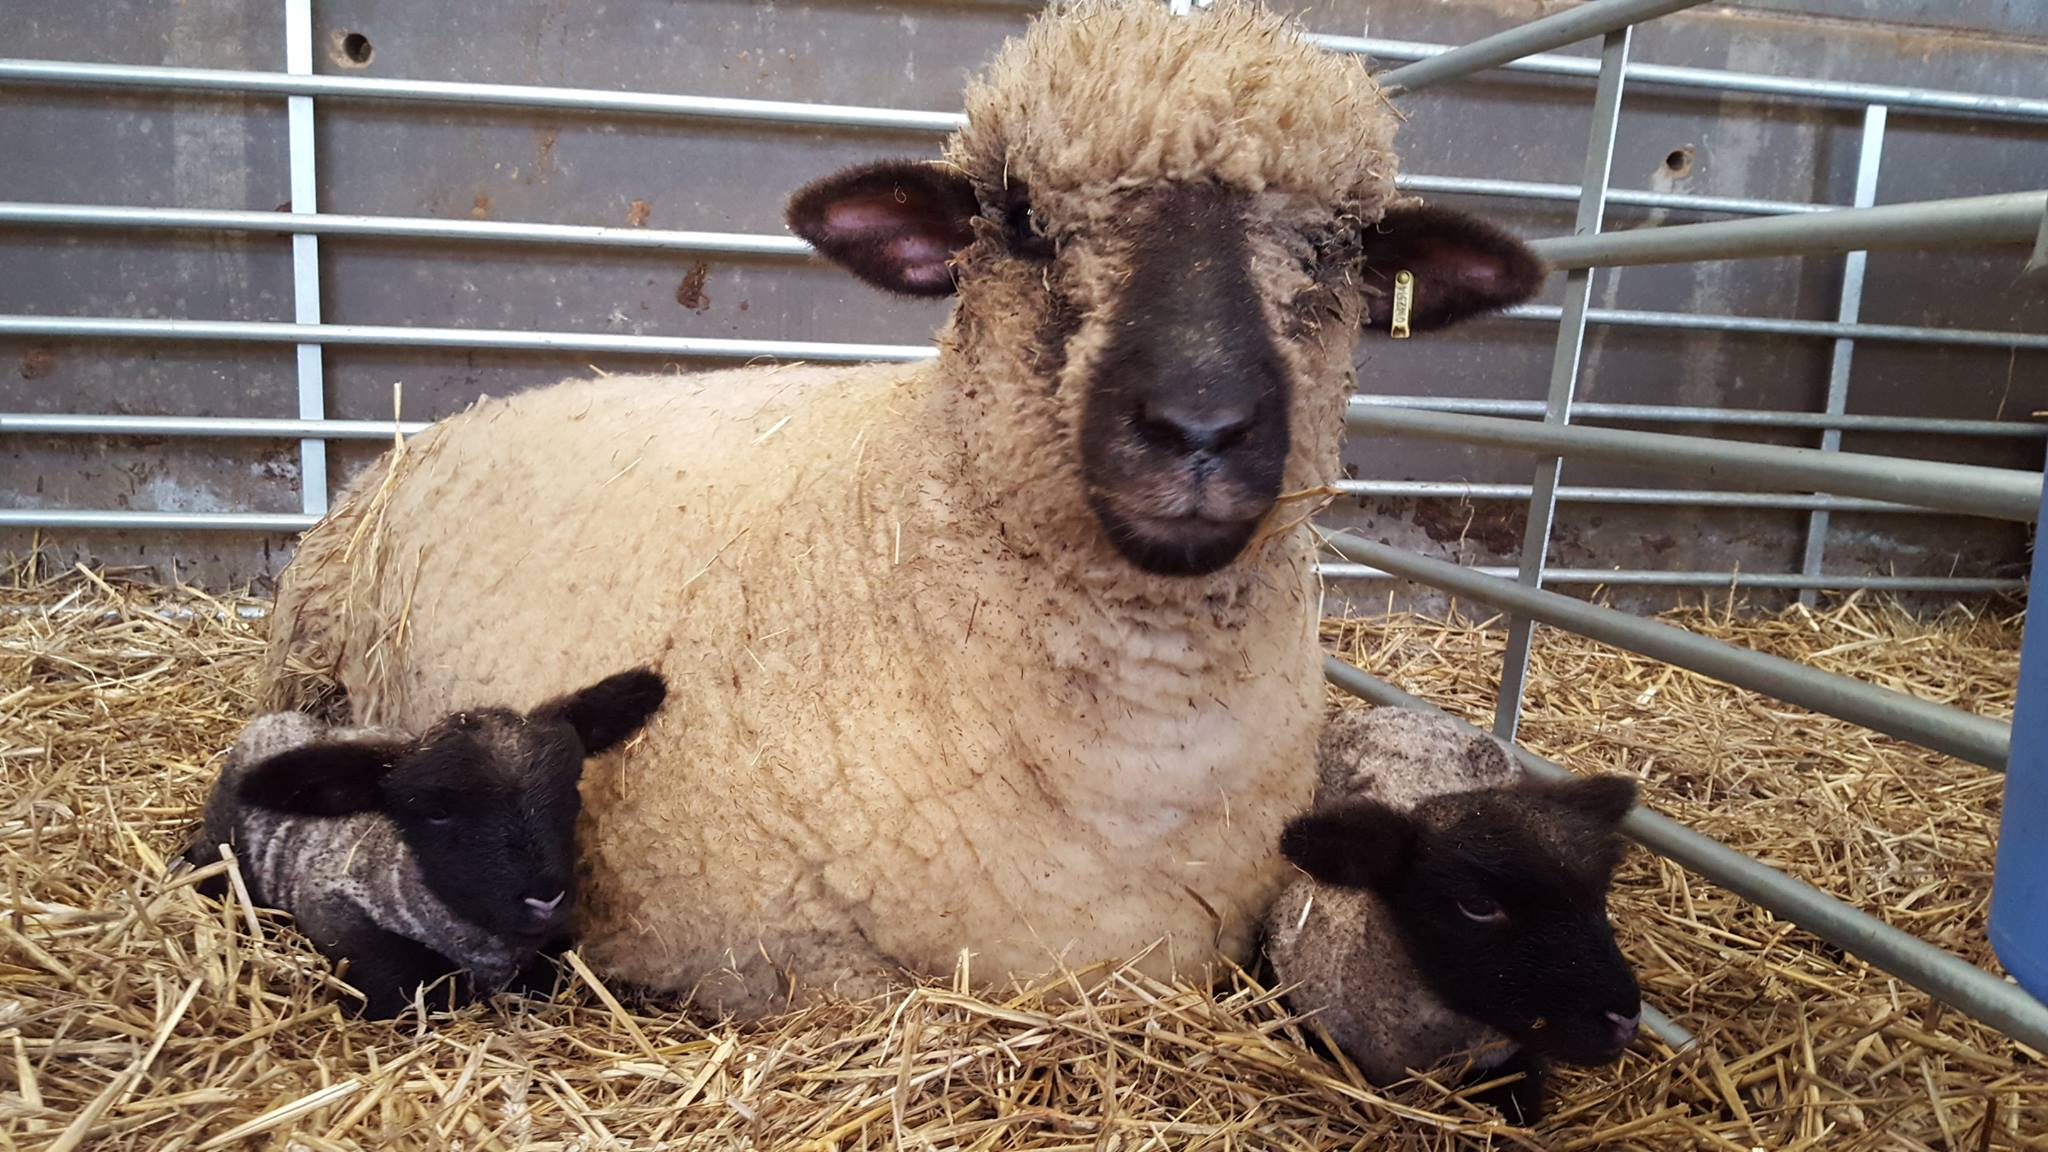 Shearling ewe with twin lambs